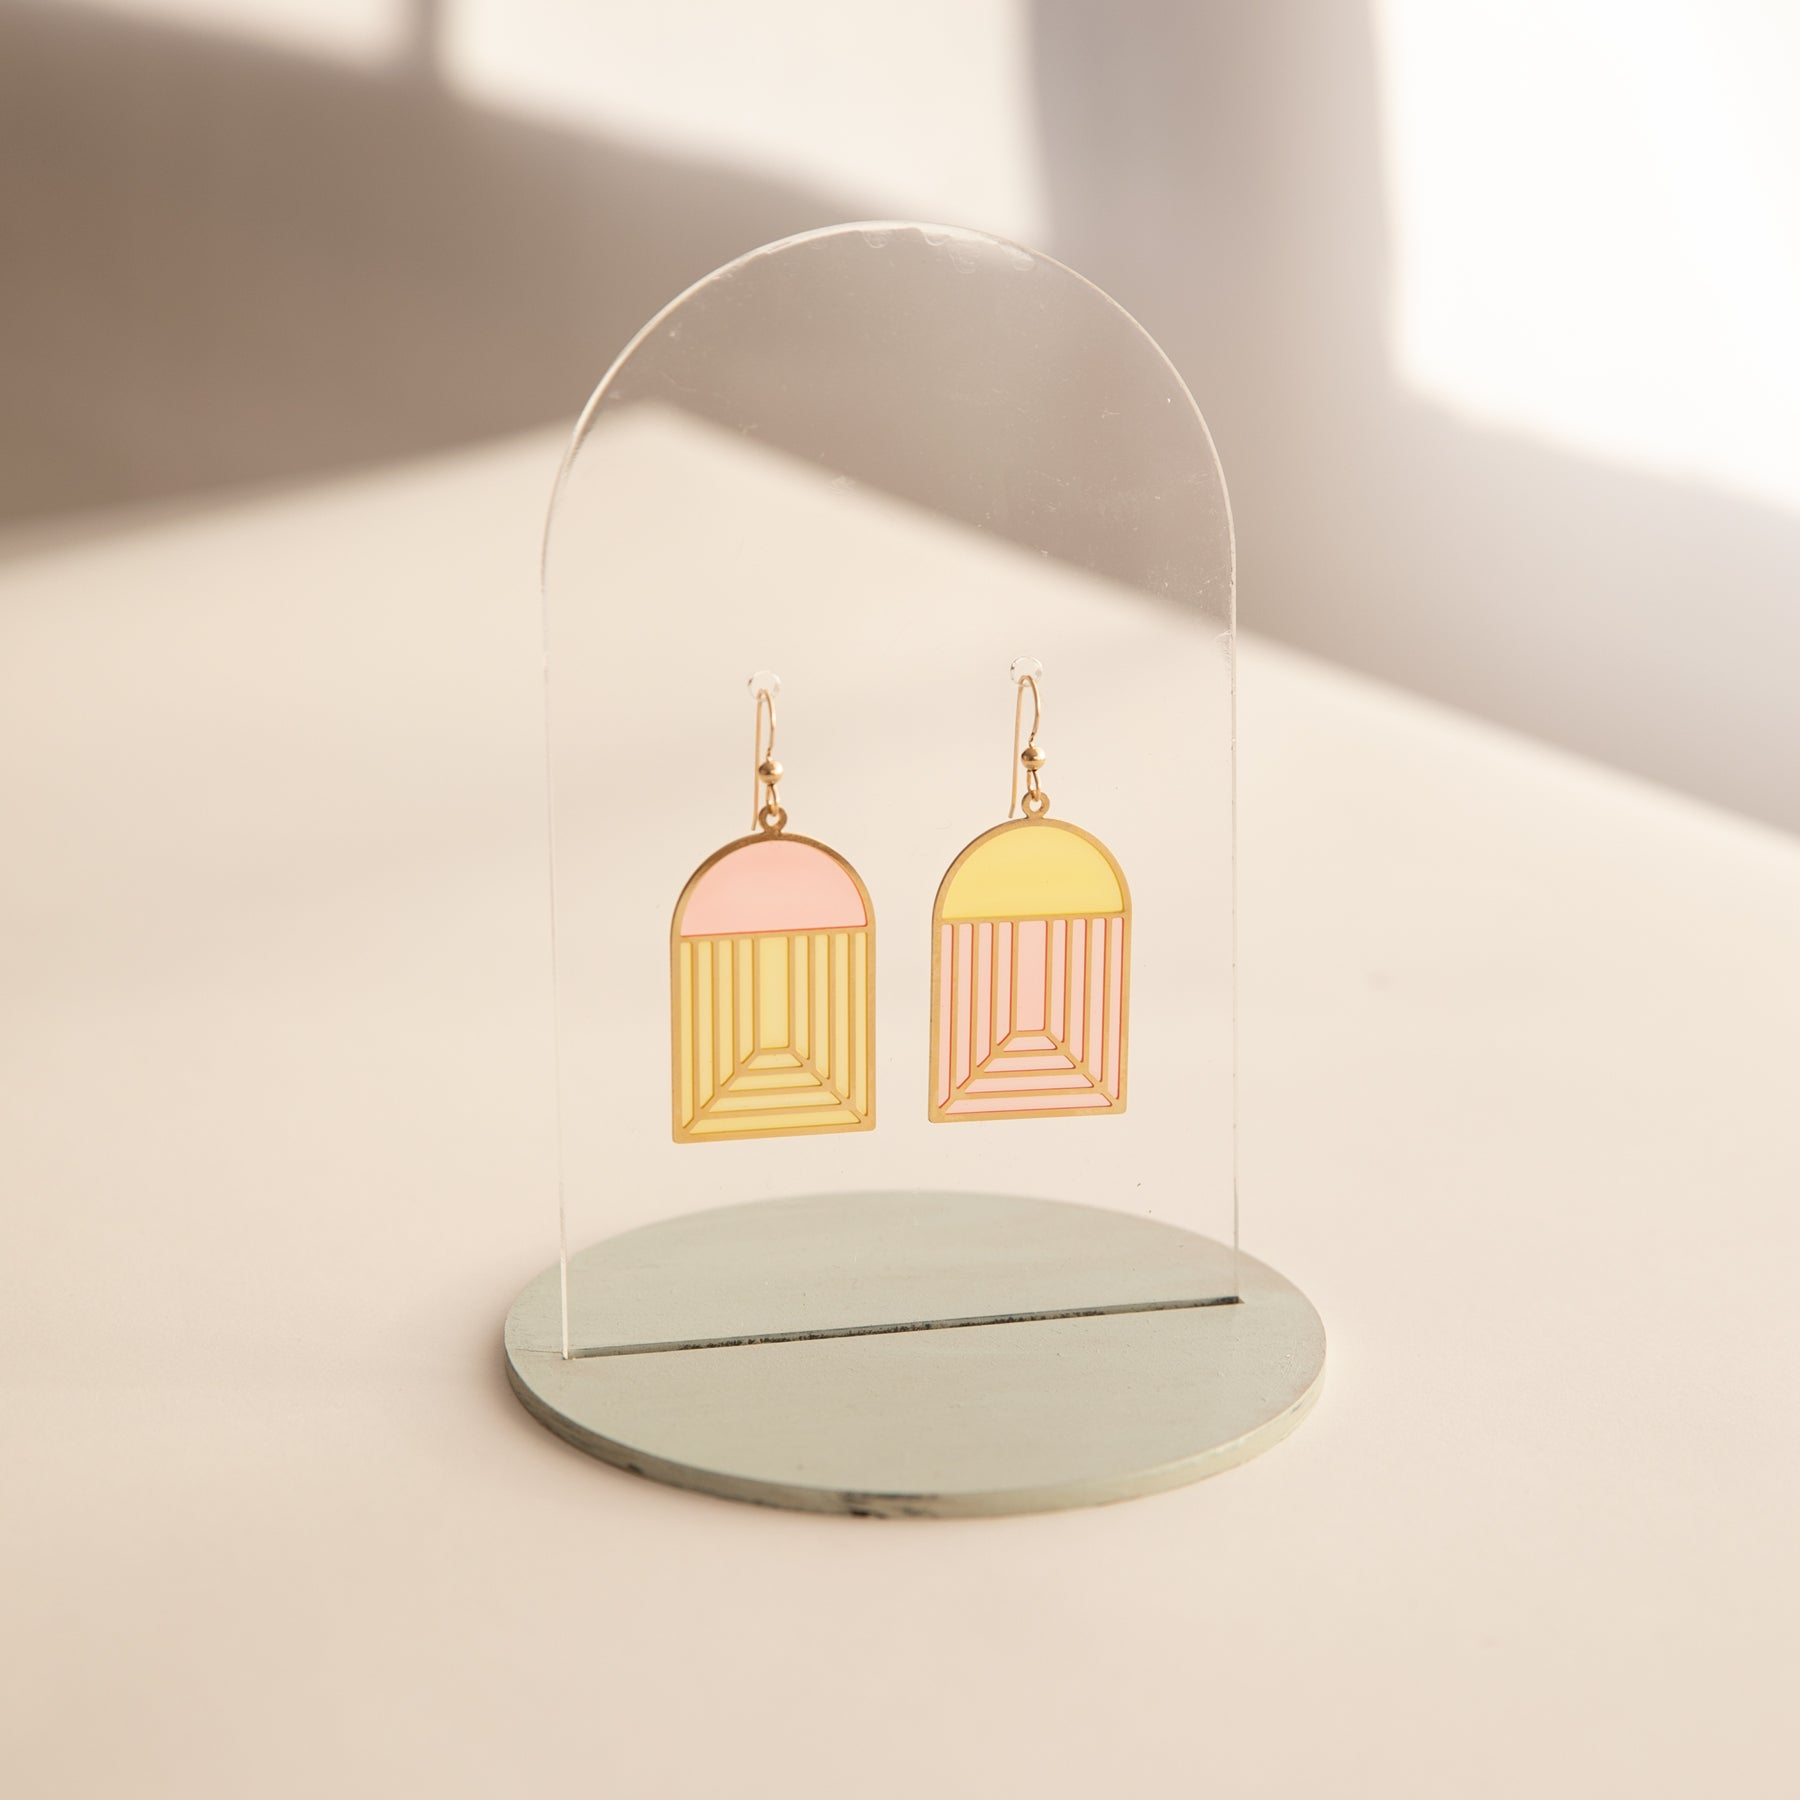 Arch - Translucent Earrings (Strawberry Lemonade)